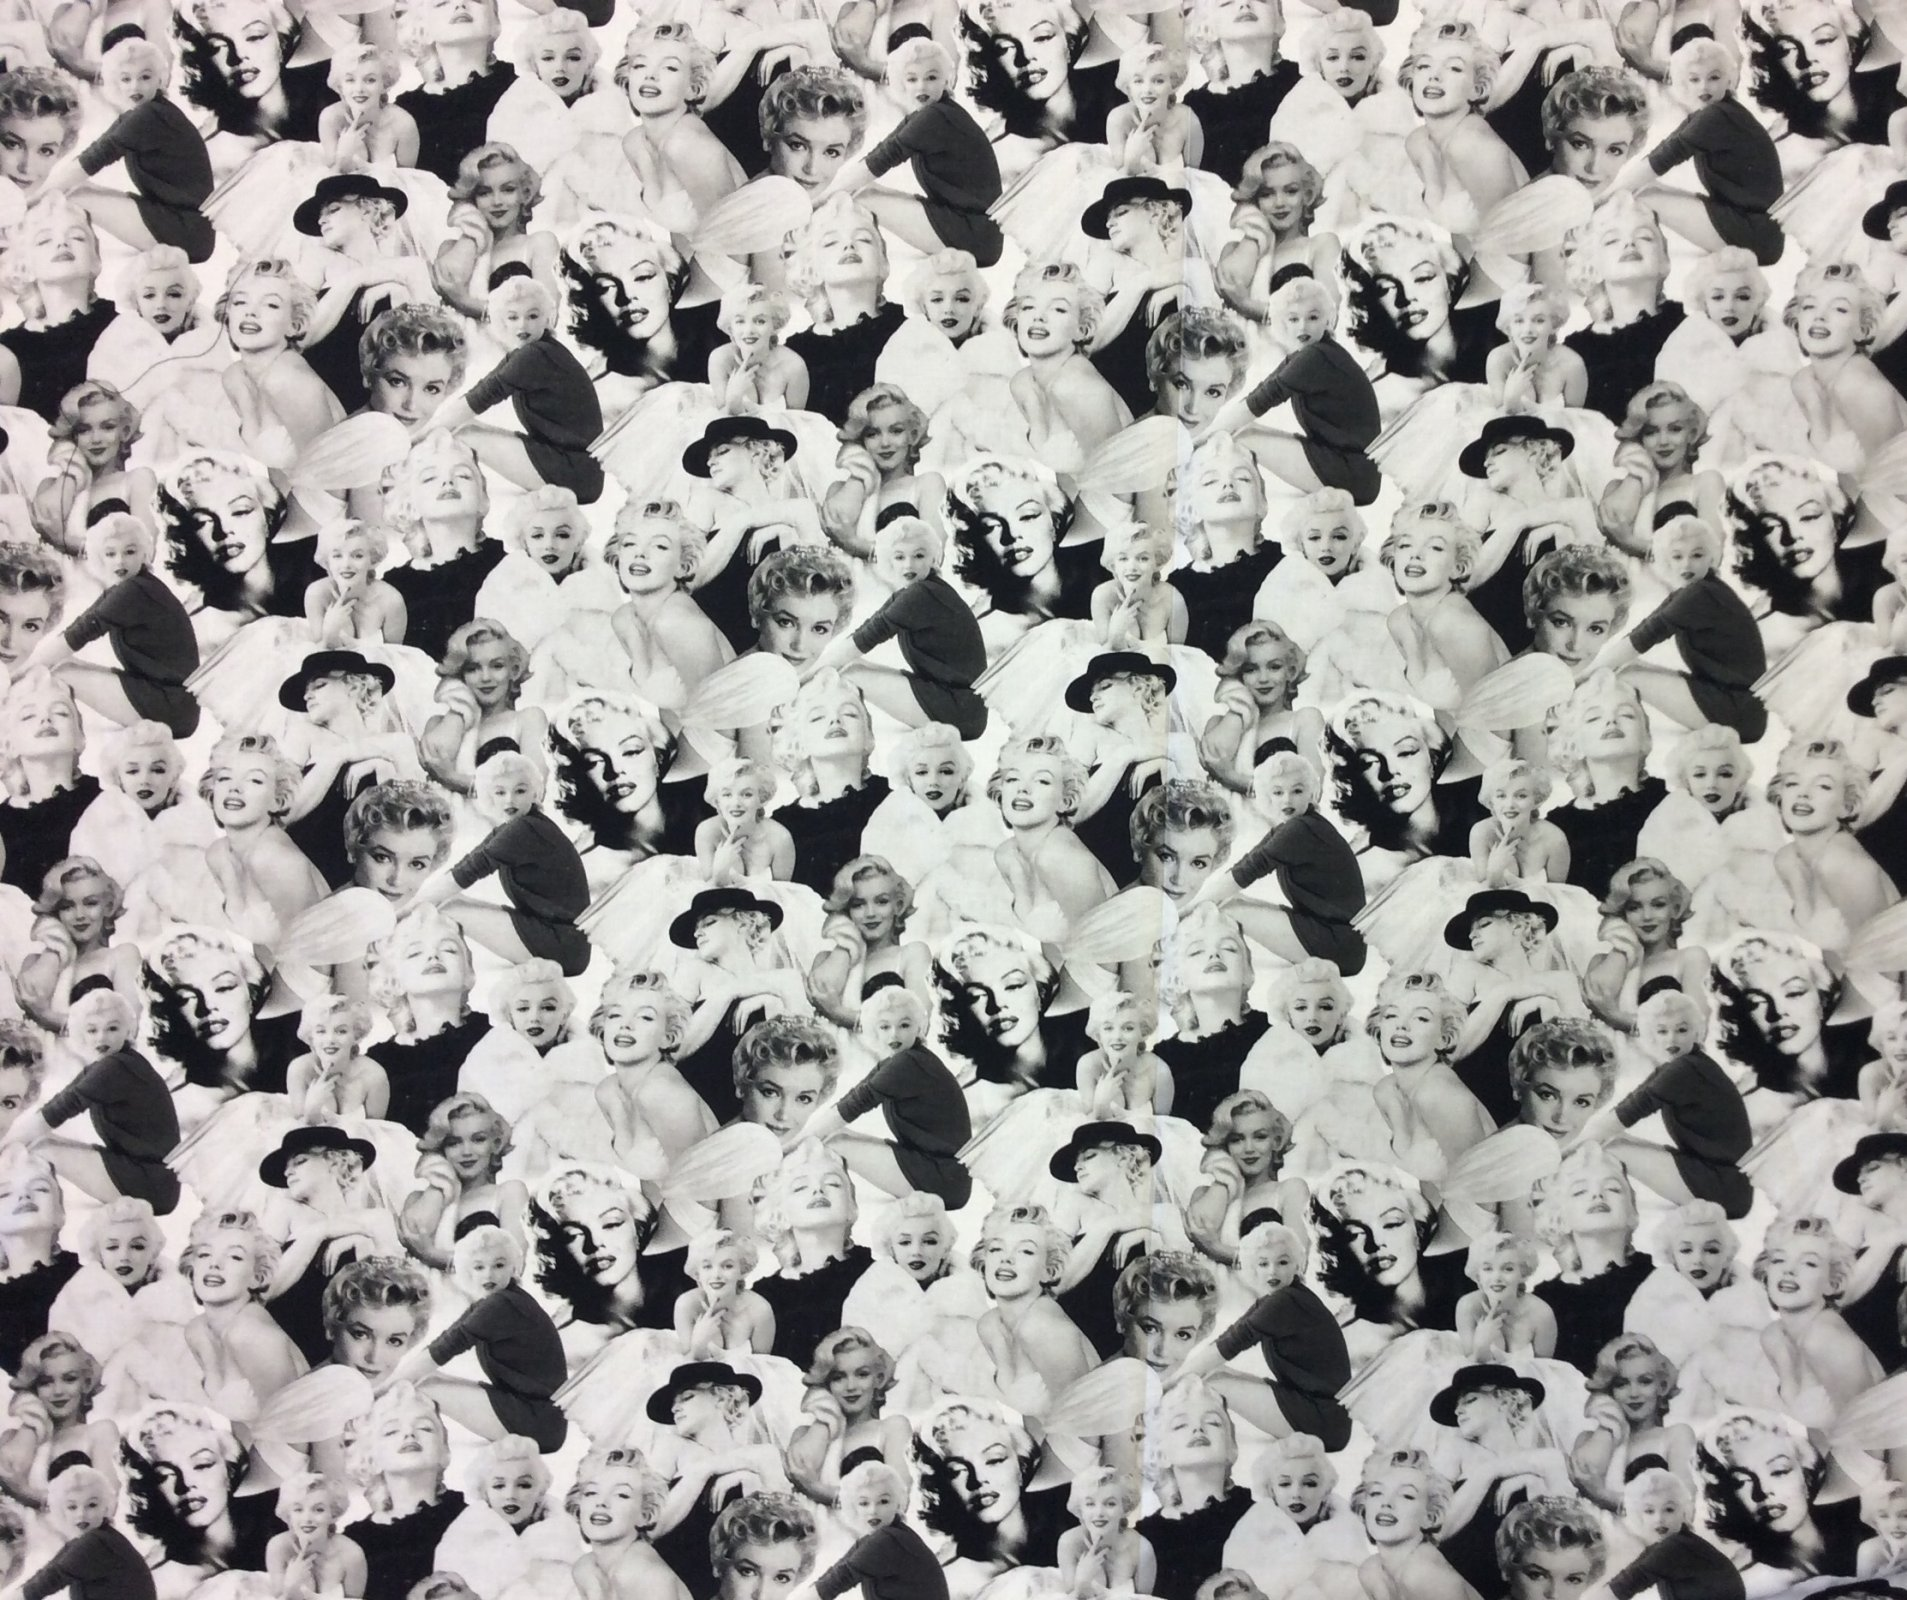 Marilyn Monroe Sexy Movie Star Silver Screen Starlet Cotton Quilt Fabric RK177